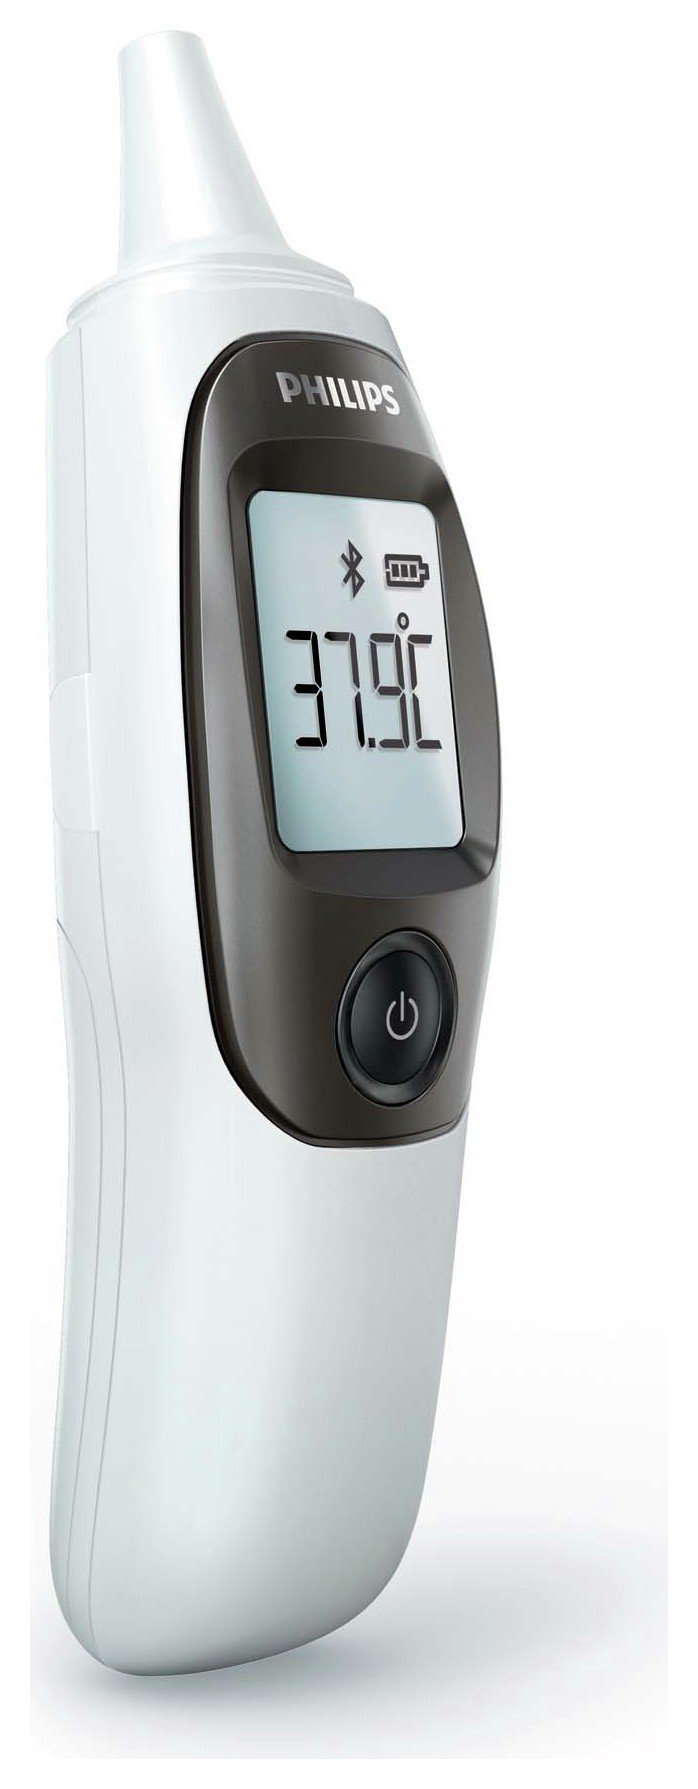 Philips Connected Bluetooth Ear Thermometer DL8740/15